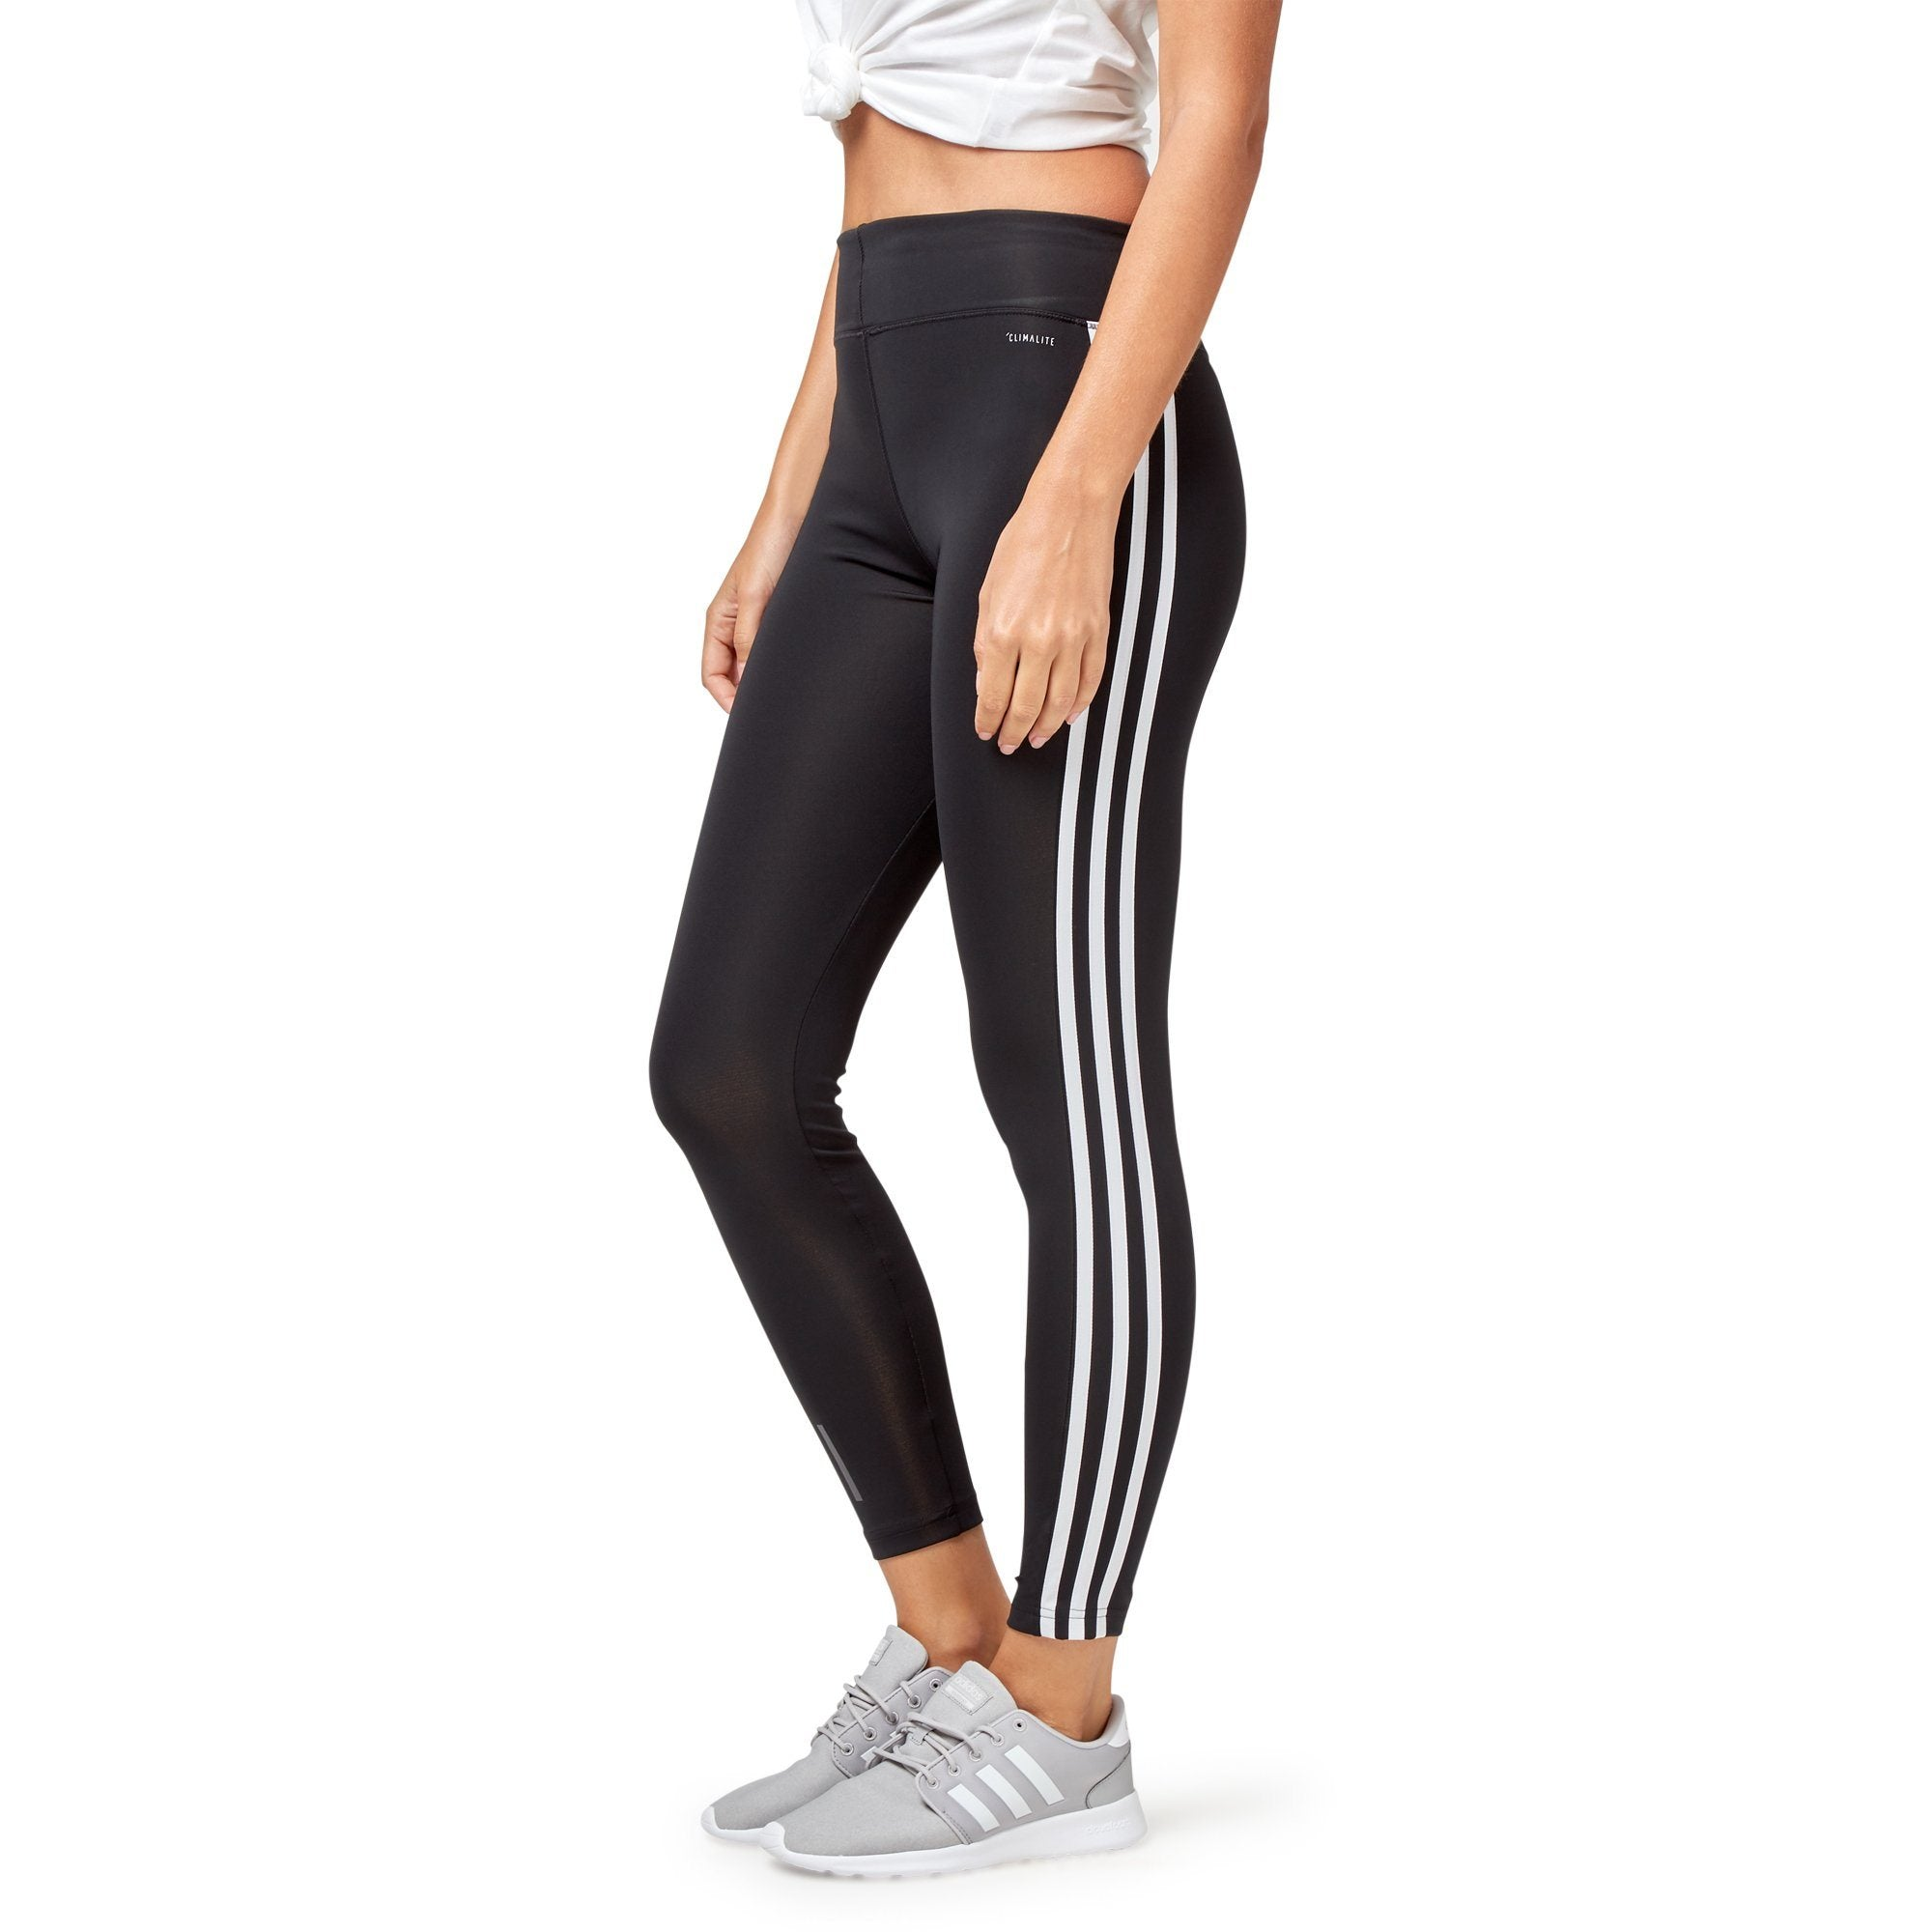 Adidas Women's Designed-2-Move 3-Stripe Long Tights - Black/White Apparel Adidas